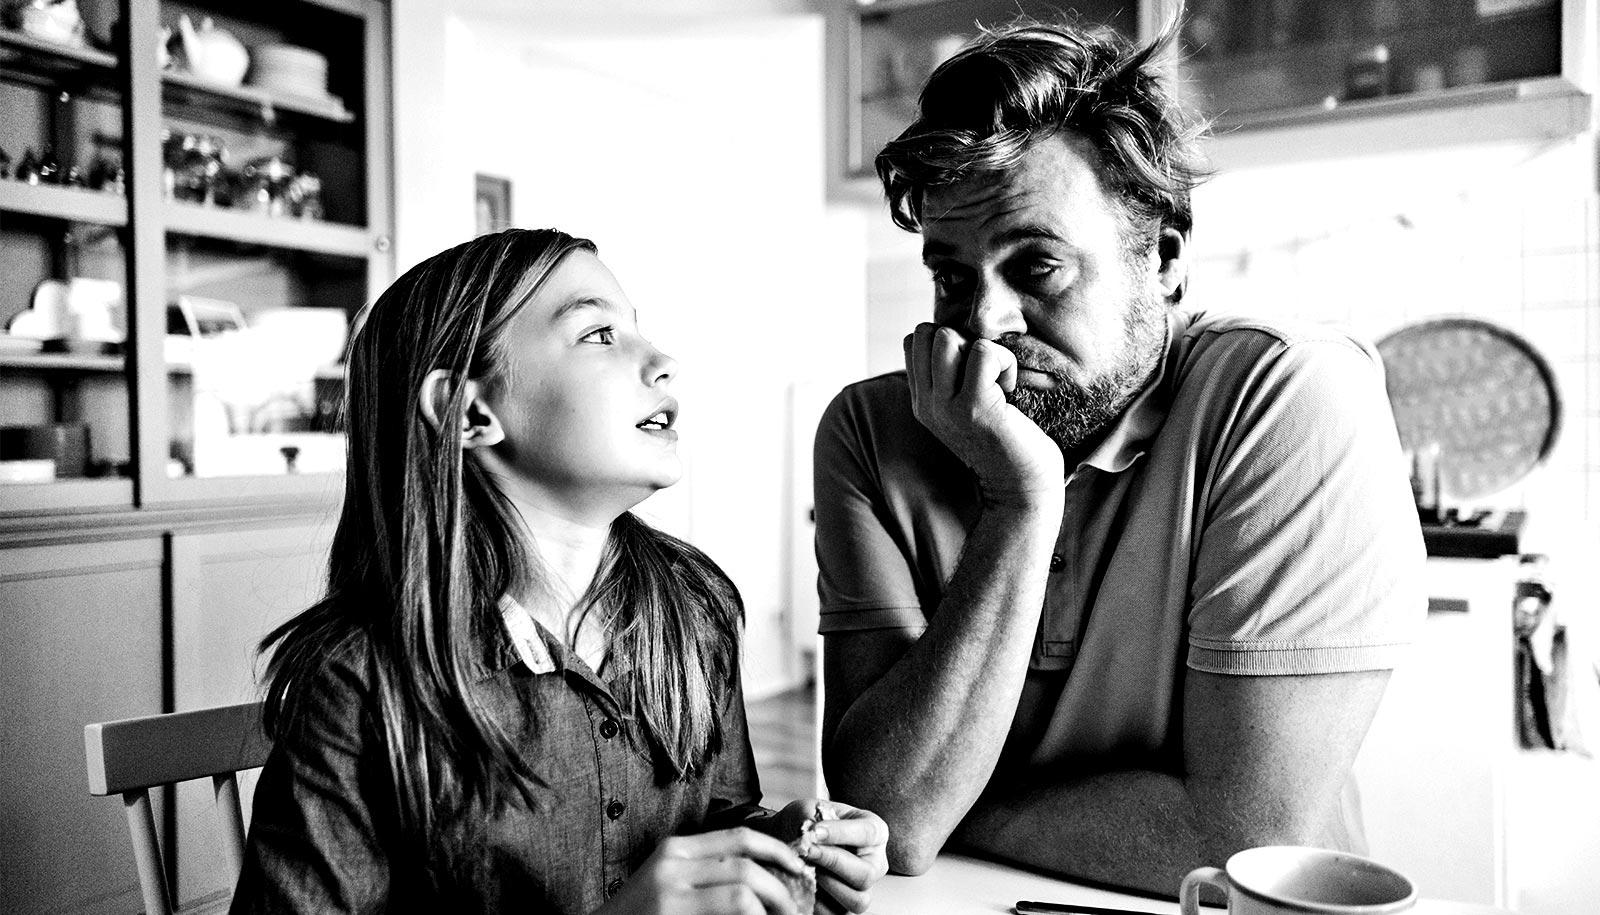 A father and daughter look at each other while sitting at the kitchen table. She looks hesitant, while he rests his face on his hand